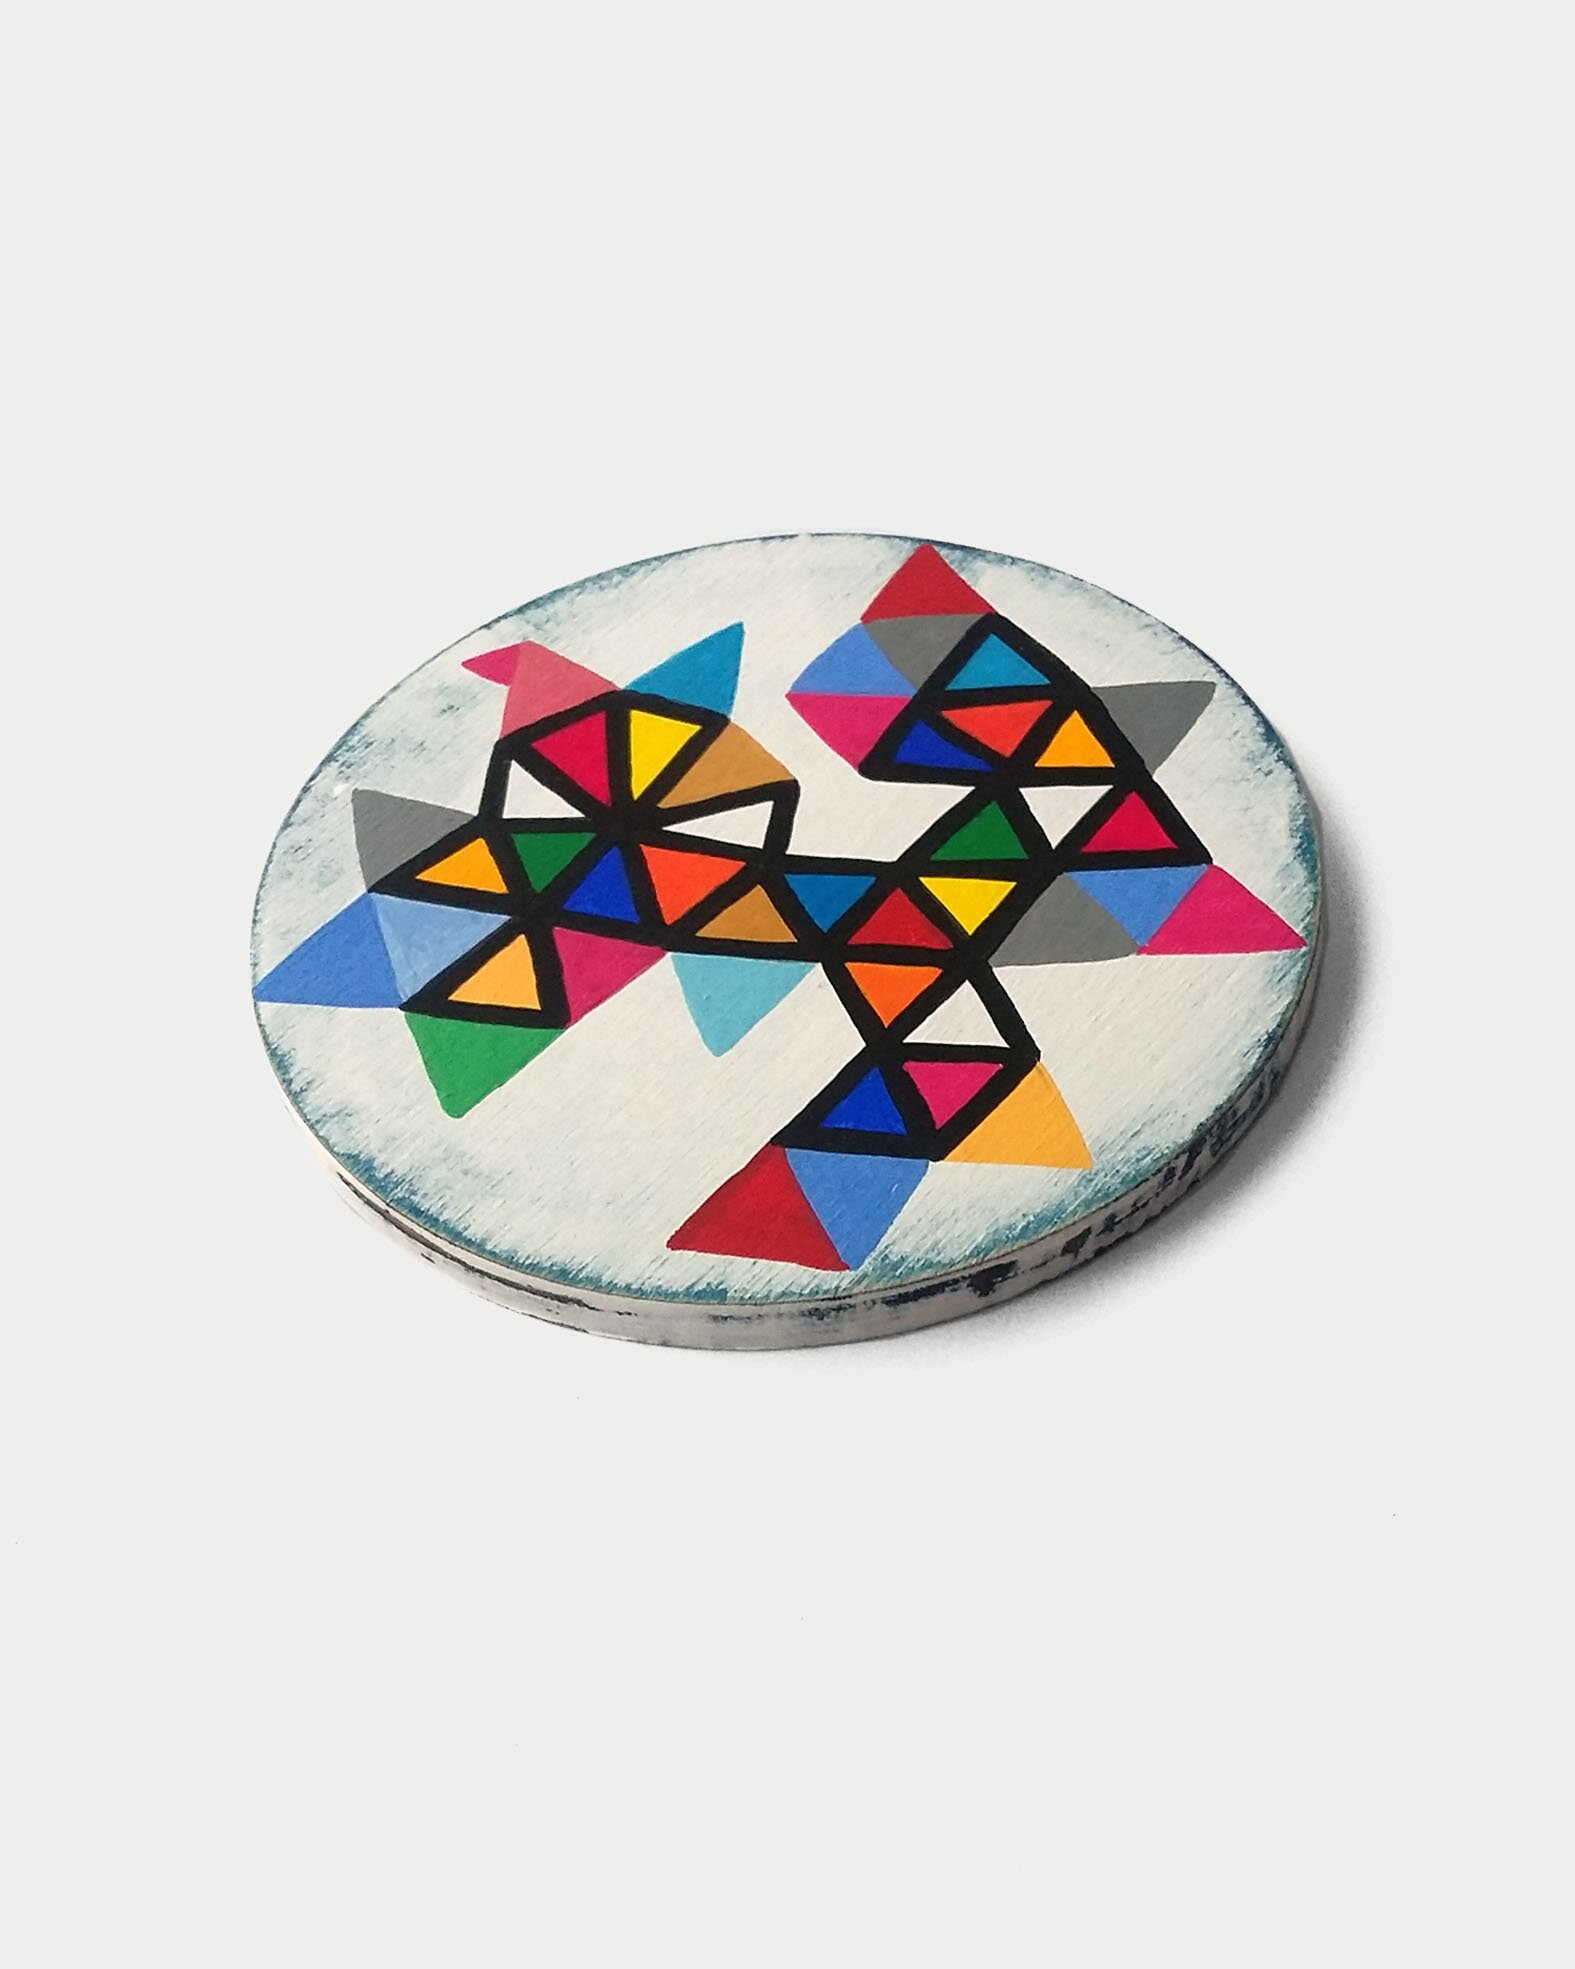 Triangles_001, geometrical miniature round painting - product images  of